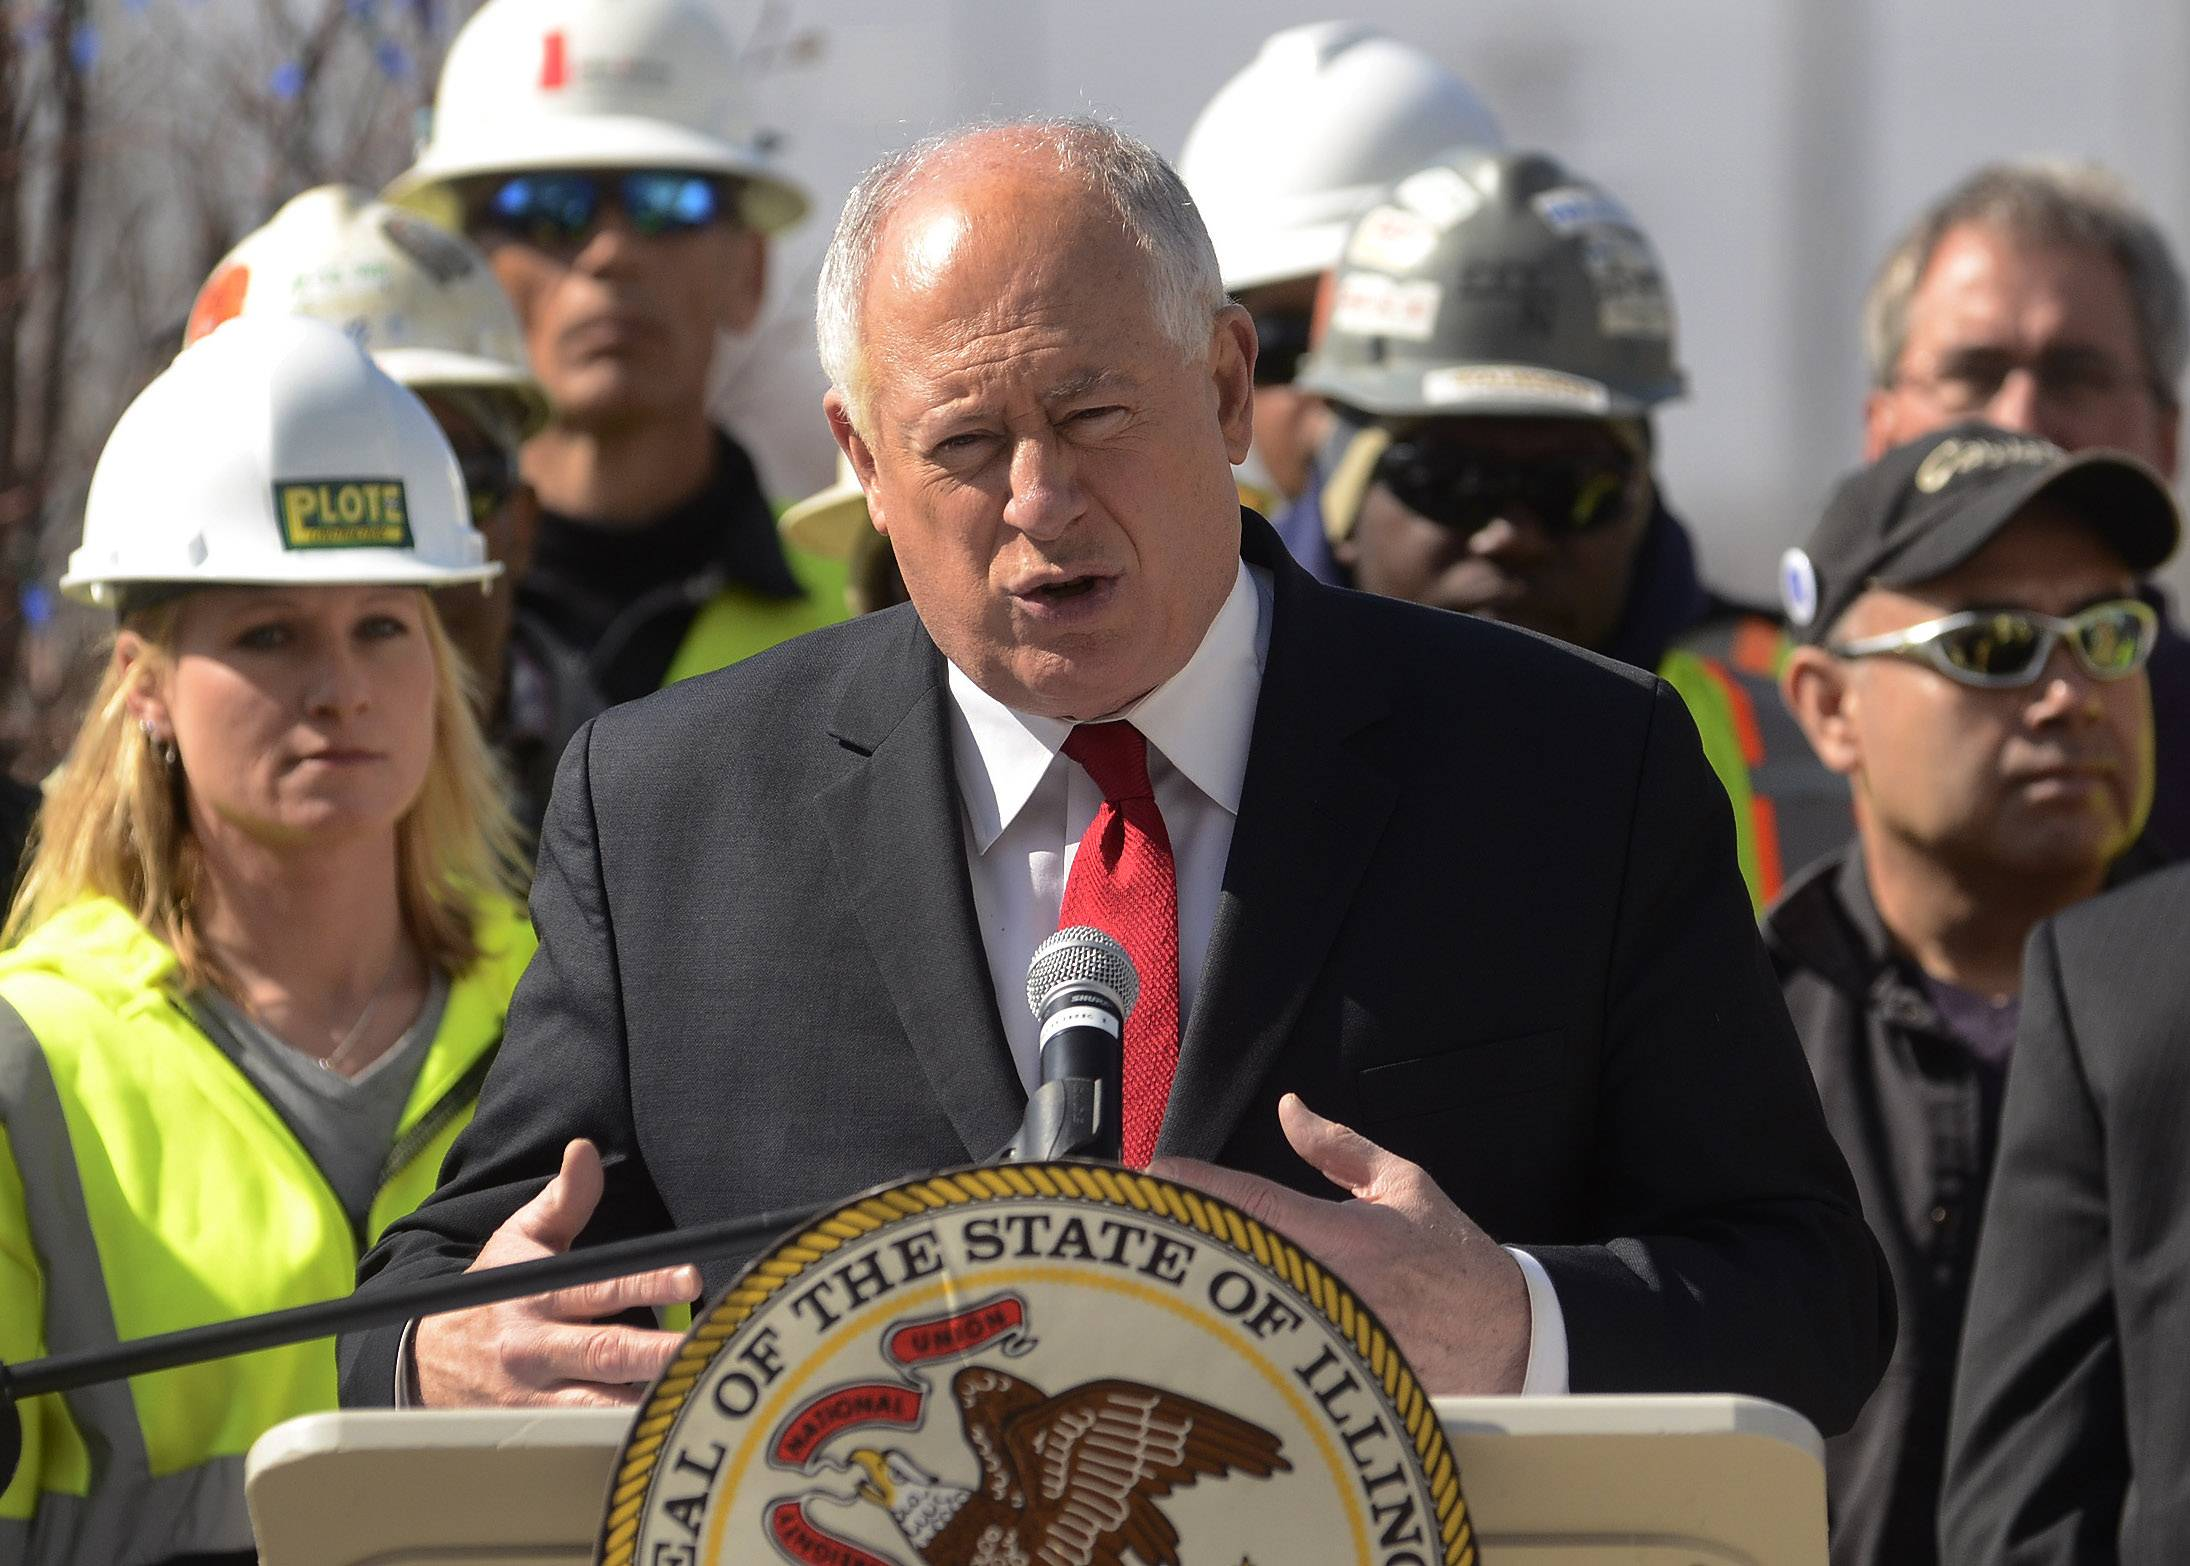 Gov. Pat Quinn announces a $1.4 billion improvement project for the Illinois Tollway in Schaumburg Friday morning.